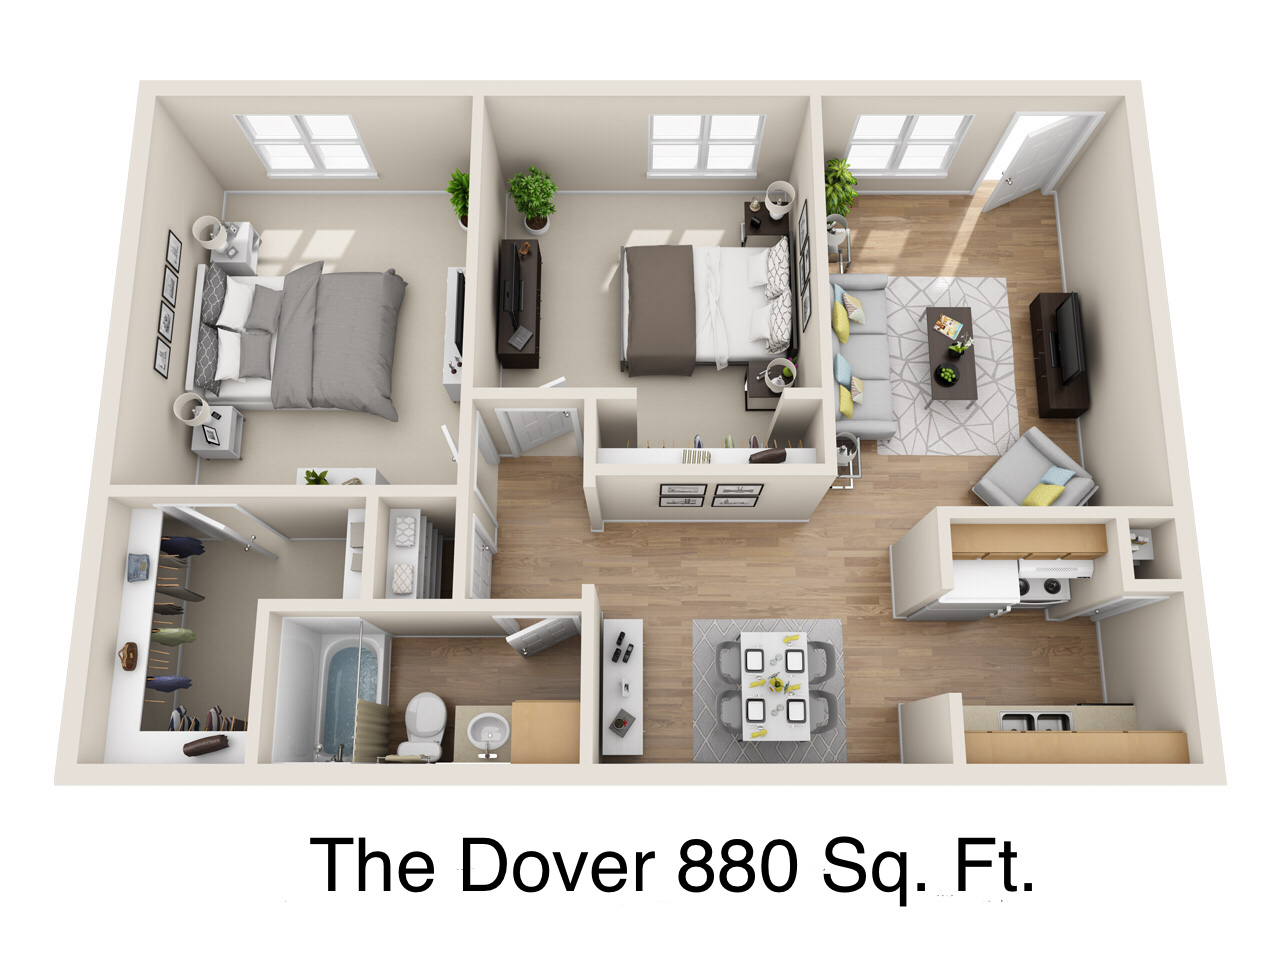 Floorplan - The Dover image